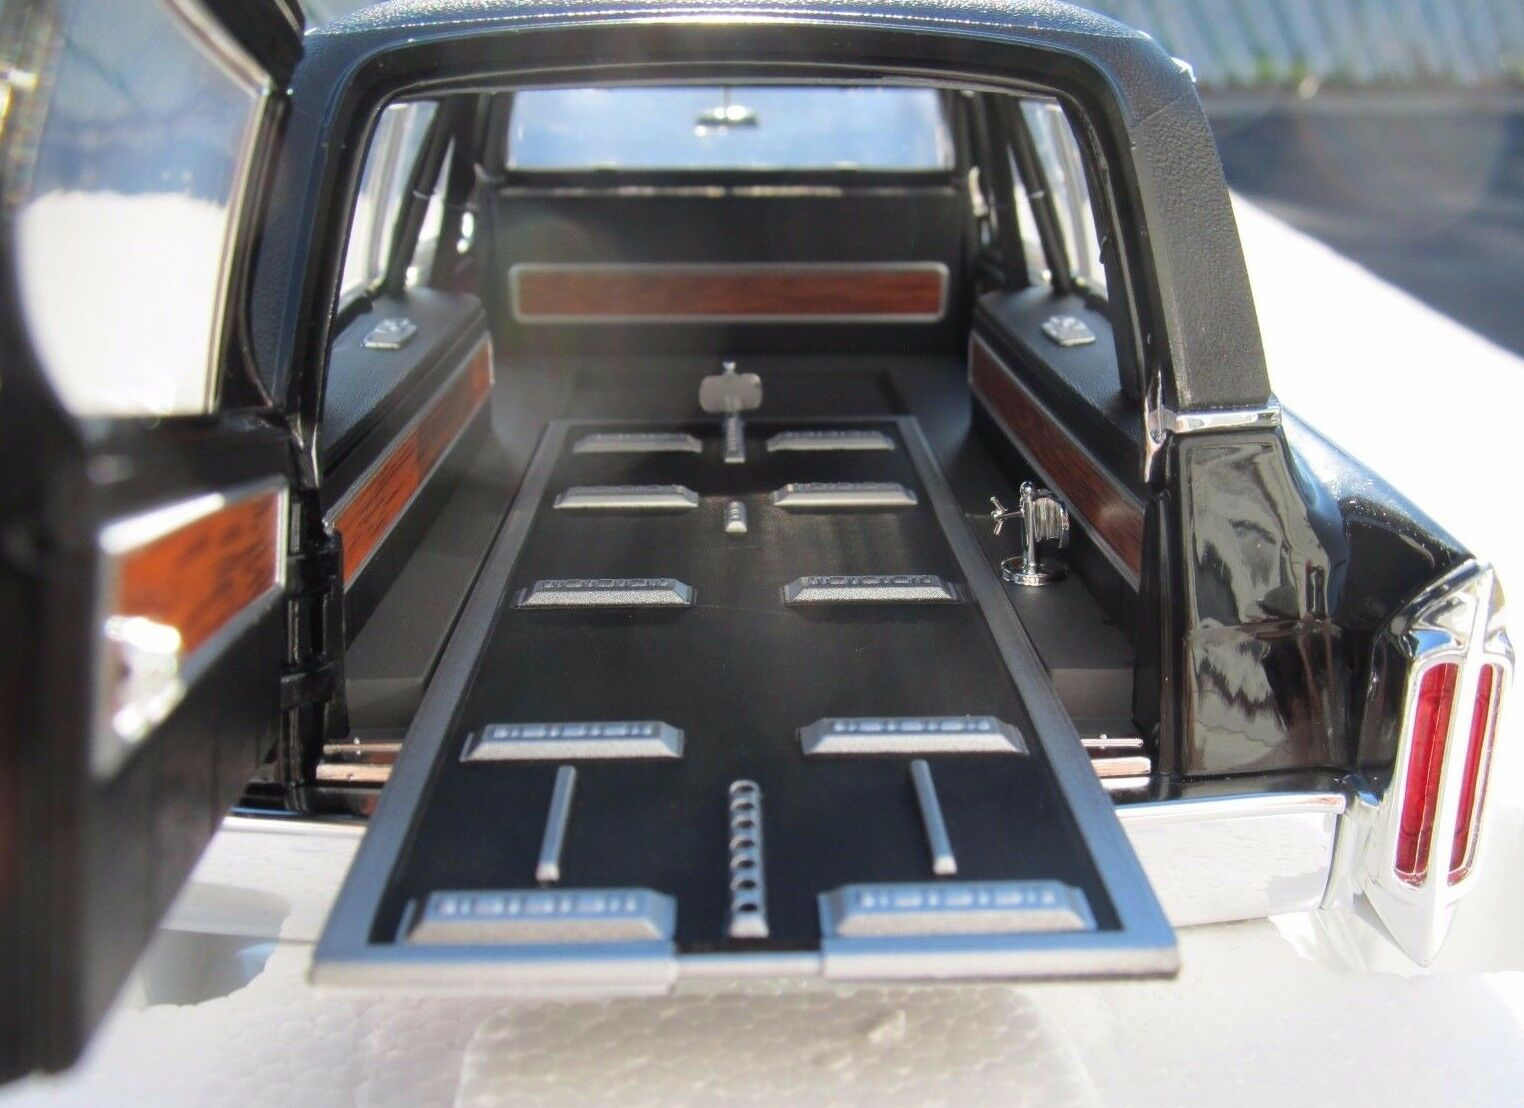 1 18 1966 CADILLAC LIMOUSINE PRECISION COLLECTION COLLECTION COLLECTION 1 of 900 Piece World Wide  b837e4